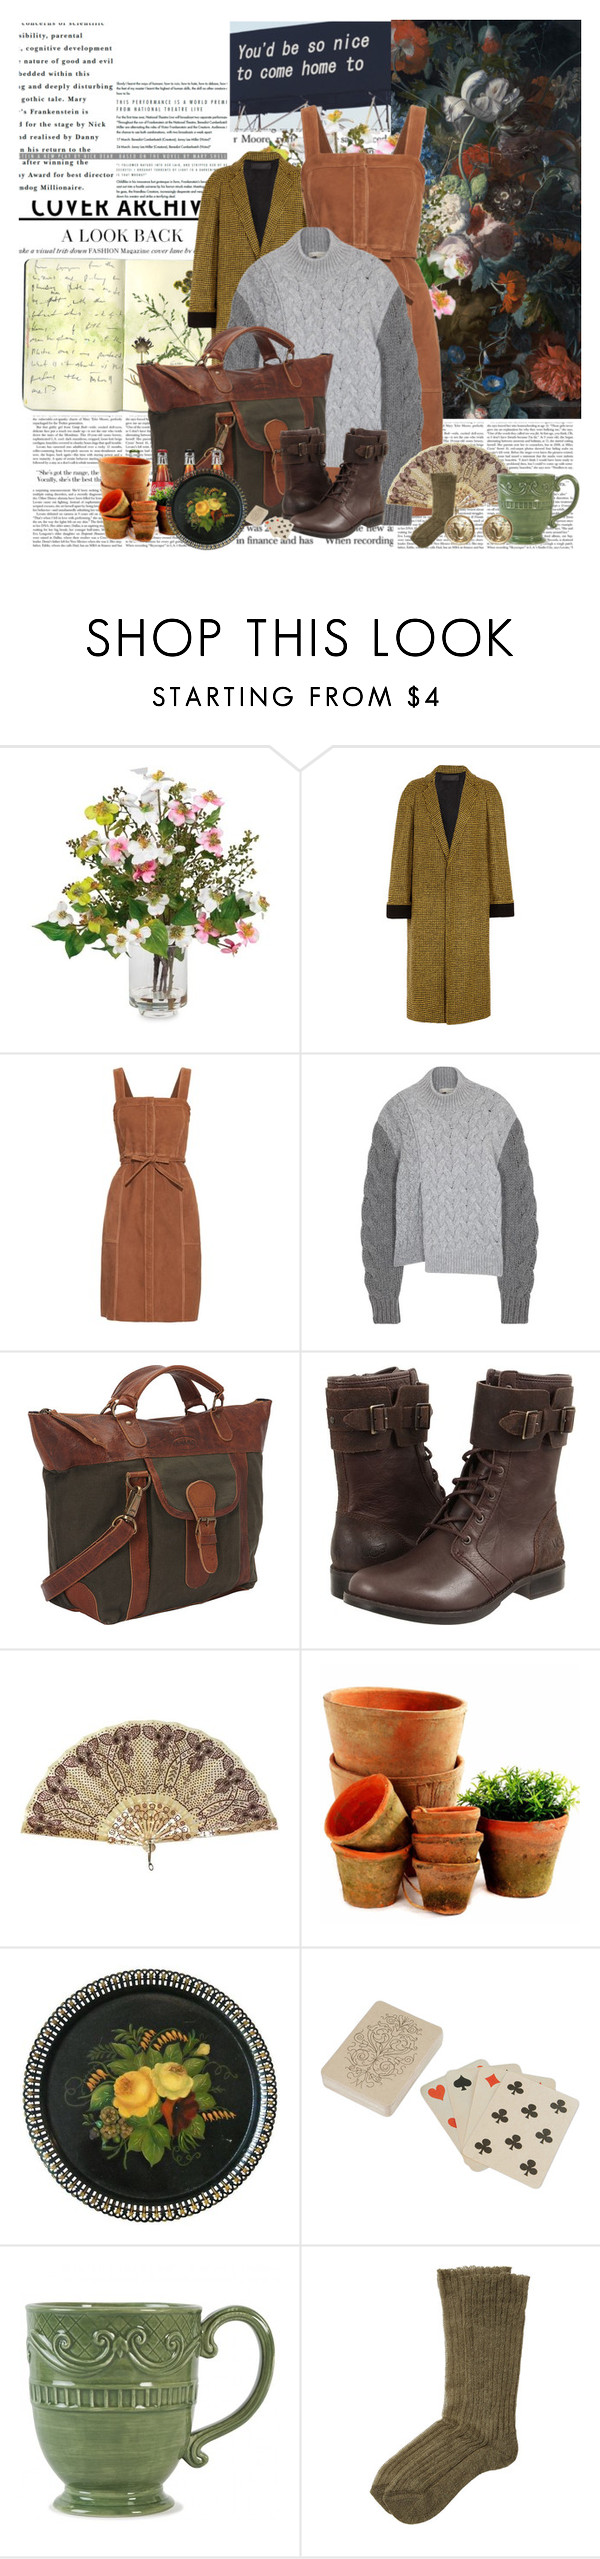 """""""you'd be so nice to come home to"""" by noextrate ❤ liked on Polyvore featuring Moleskine, Nearly Natural, M.i.h Jeans, STELLA McCARTNEY, UGG Australia, Dot & Bo, Fitz & Floyd, Etro and Chanel"""